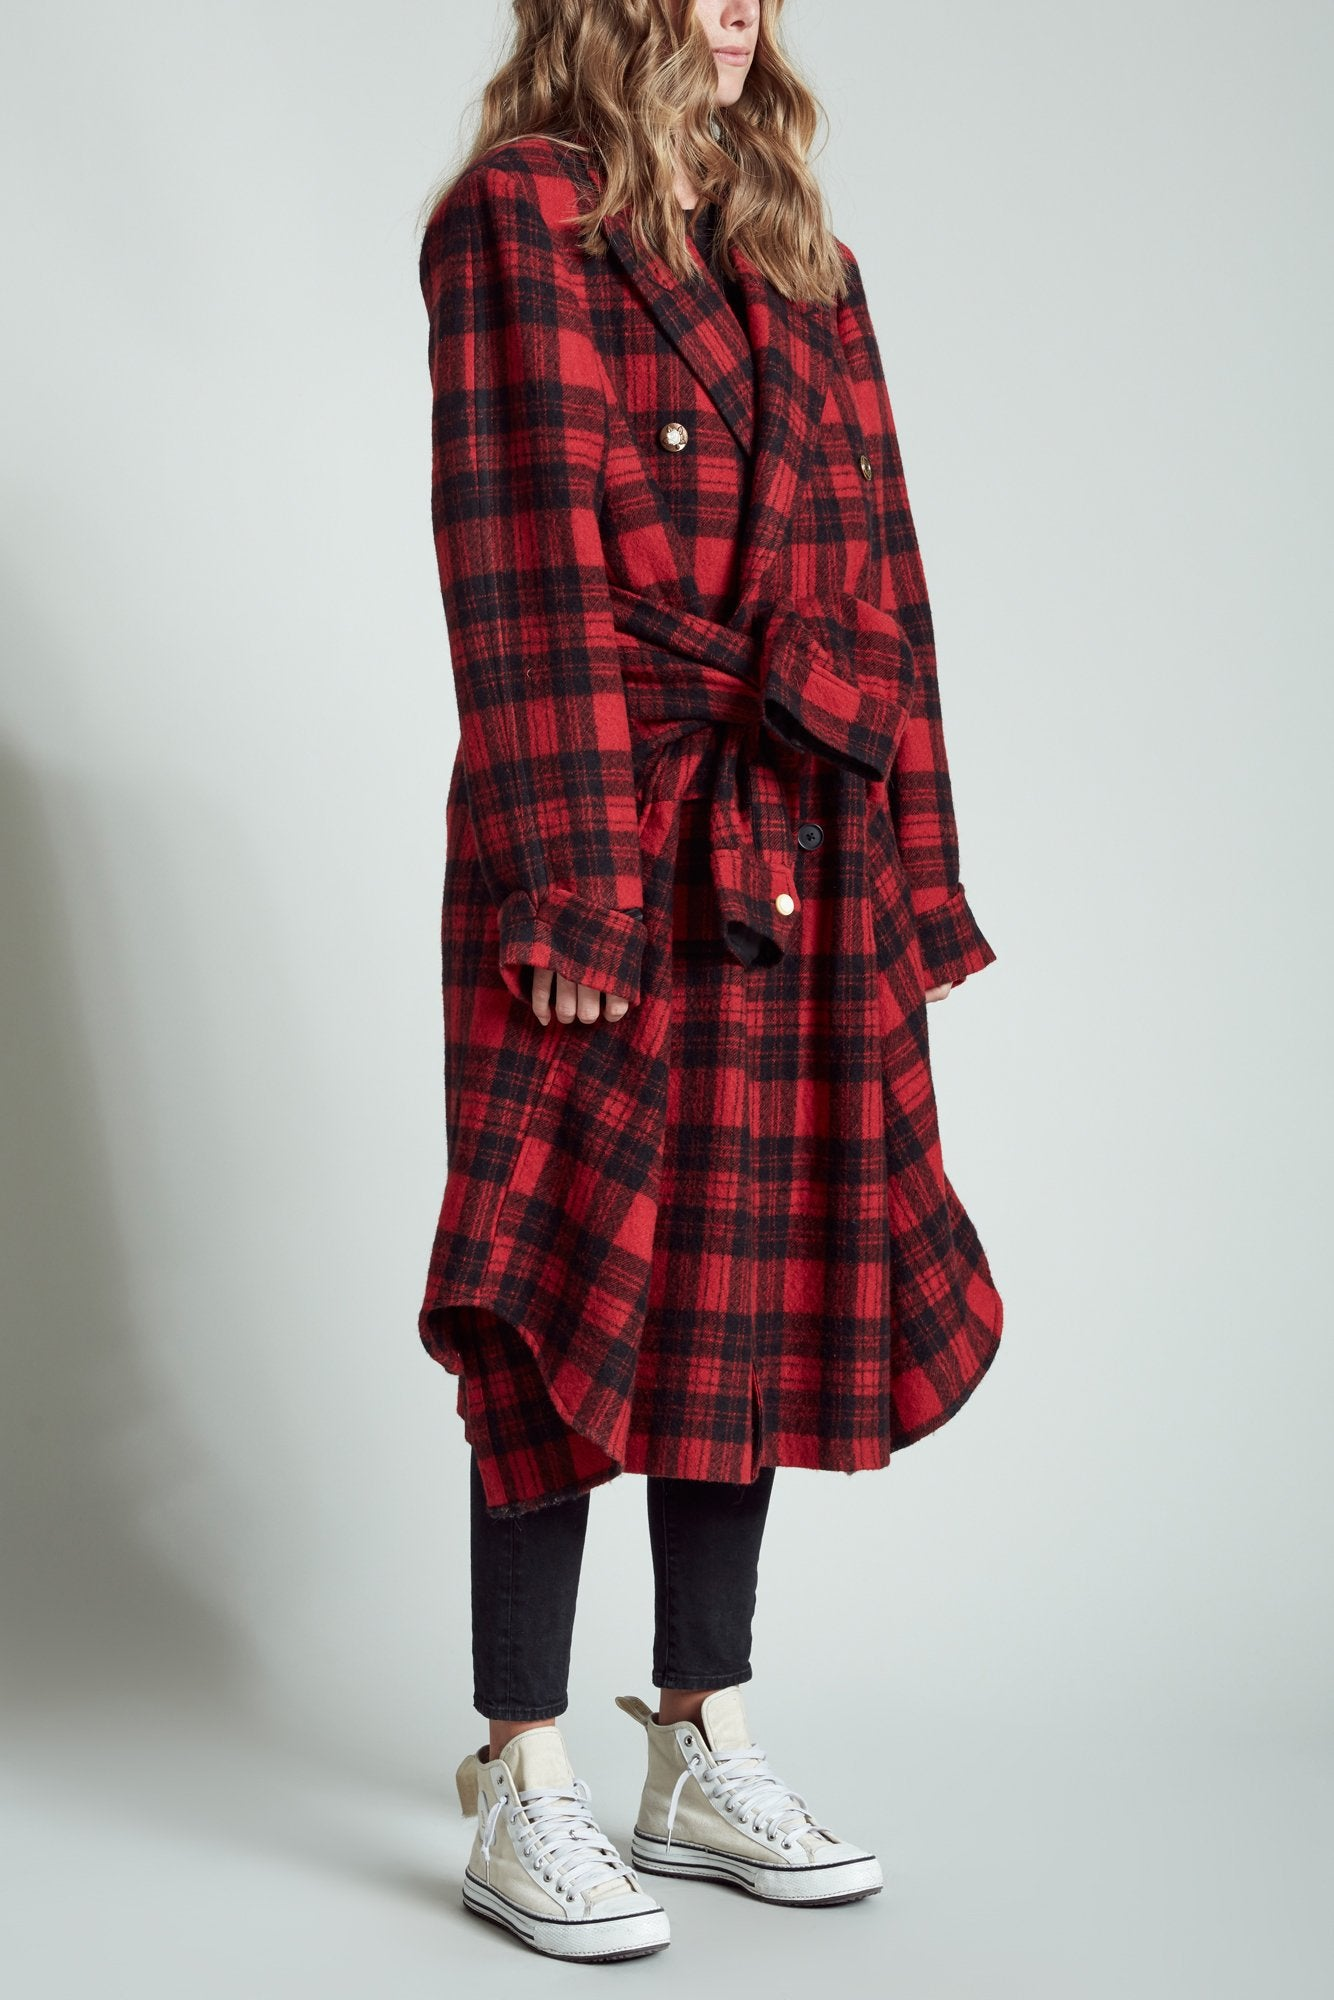 Grunge Coat - Red Plaid